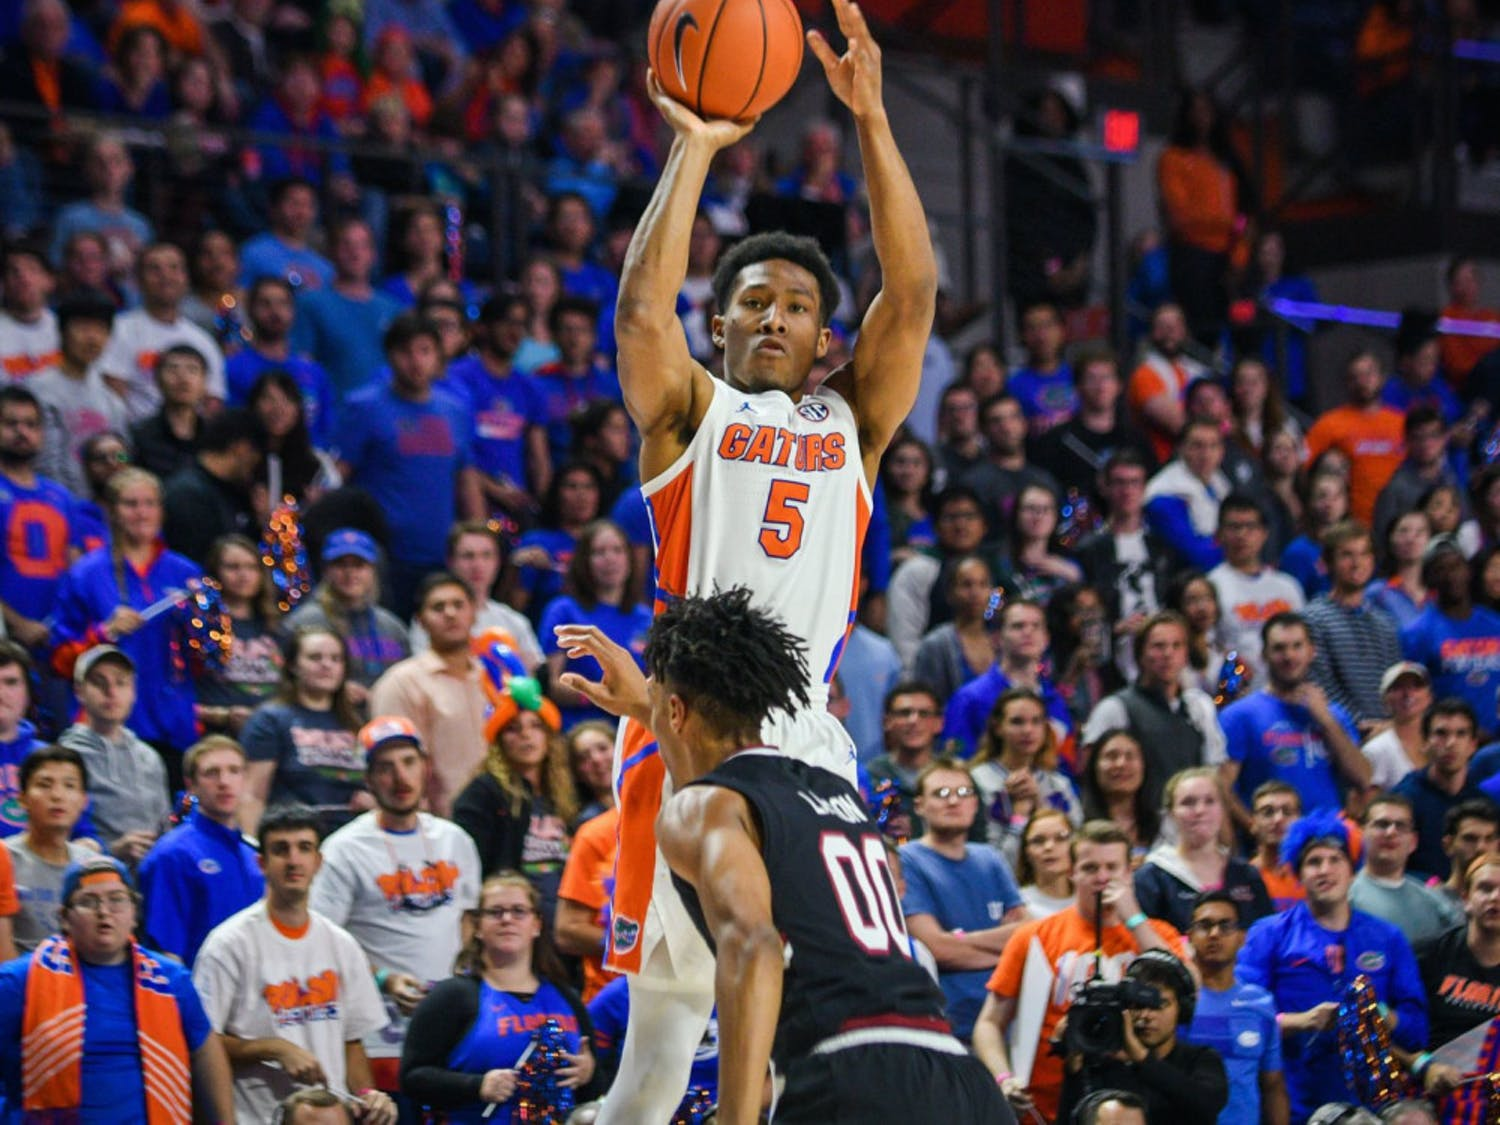 Senior guard KeVaughn Allen scored a team-high 21 points on Wednesday in the Gators' 82-77 overtime win over No. 13 LSU.